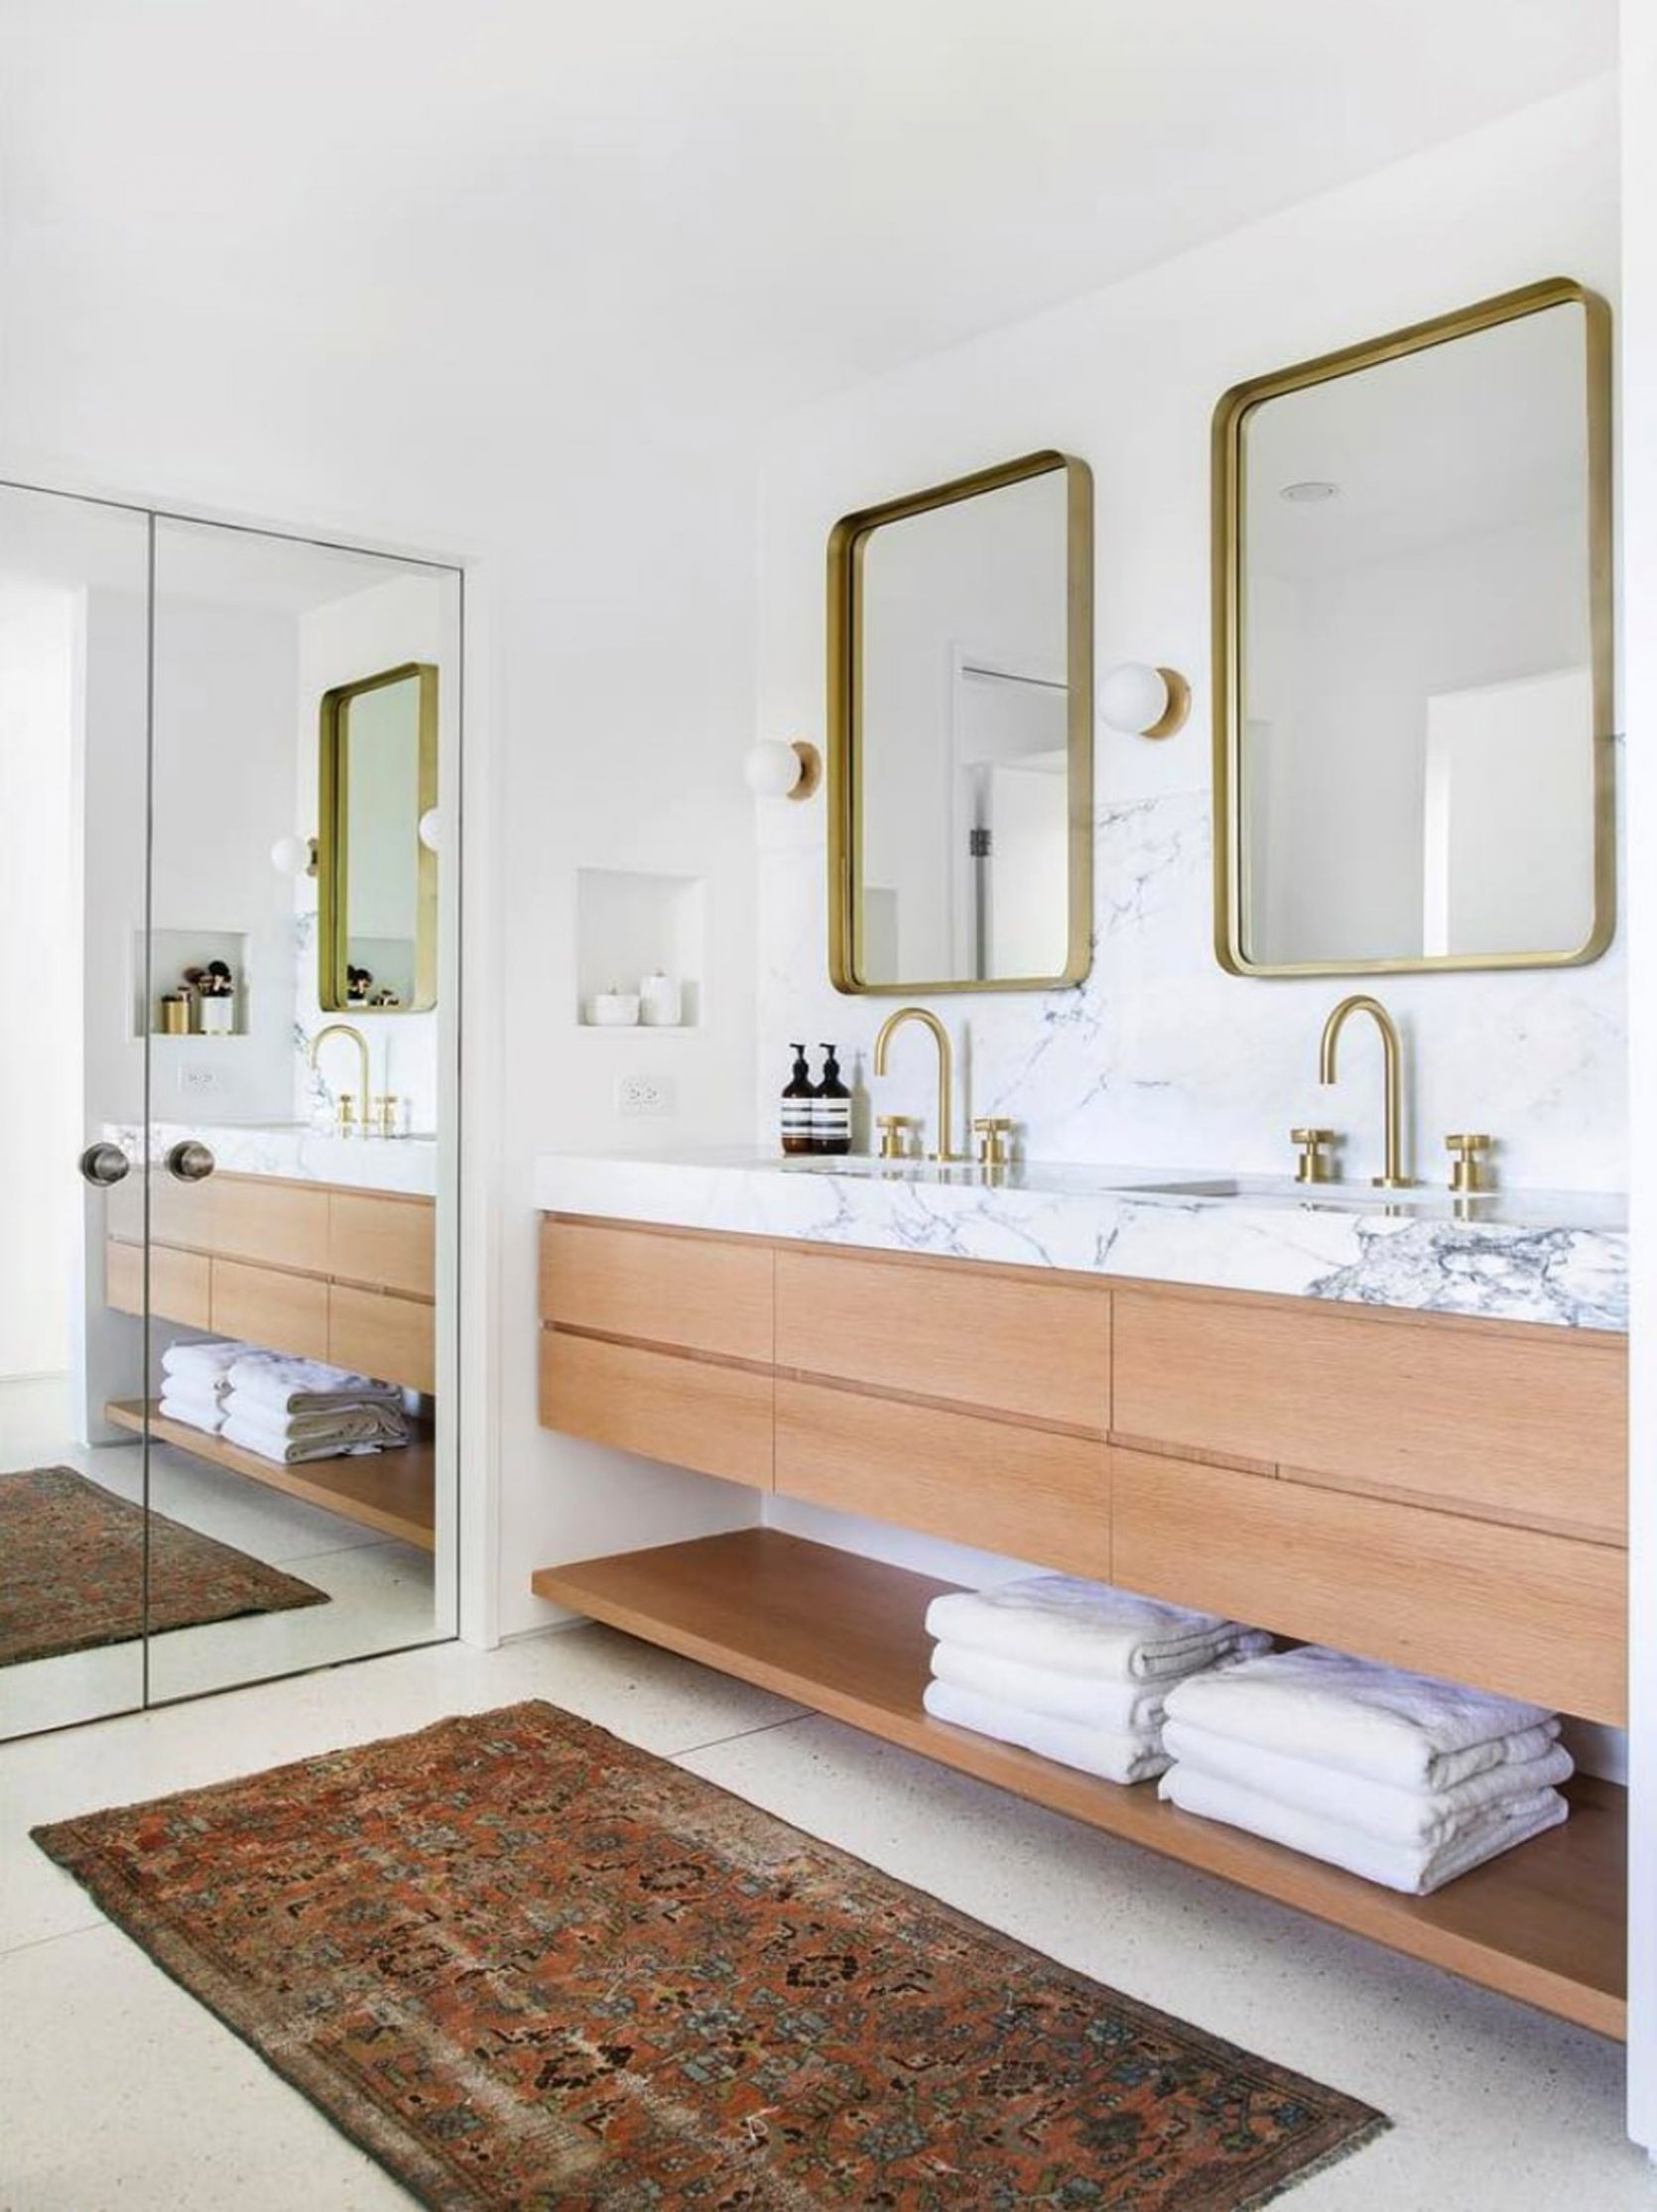 10 Of The Most Exciting Bathroom Design Trends For 2019 Unique Bathroom Modern Bathroom Design Bathroom Trends